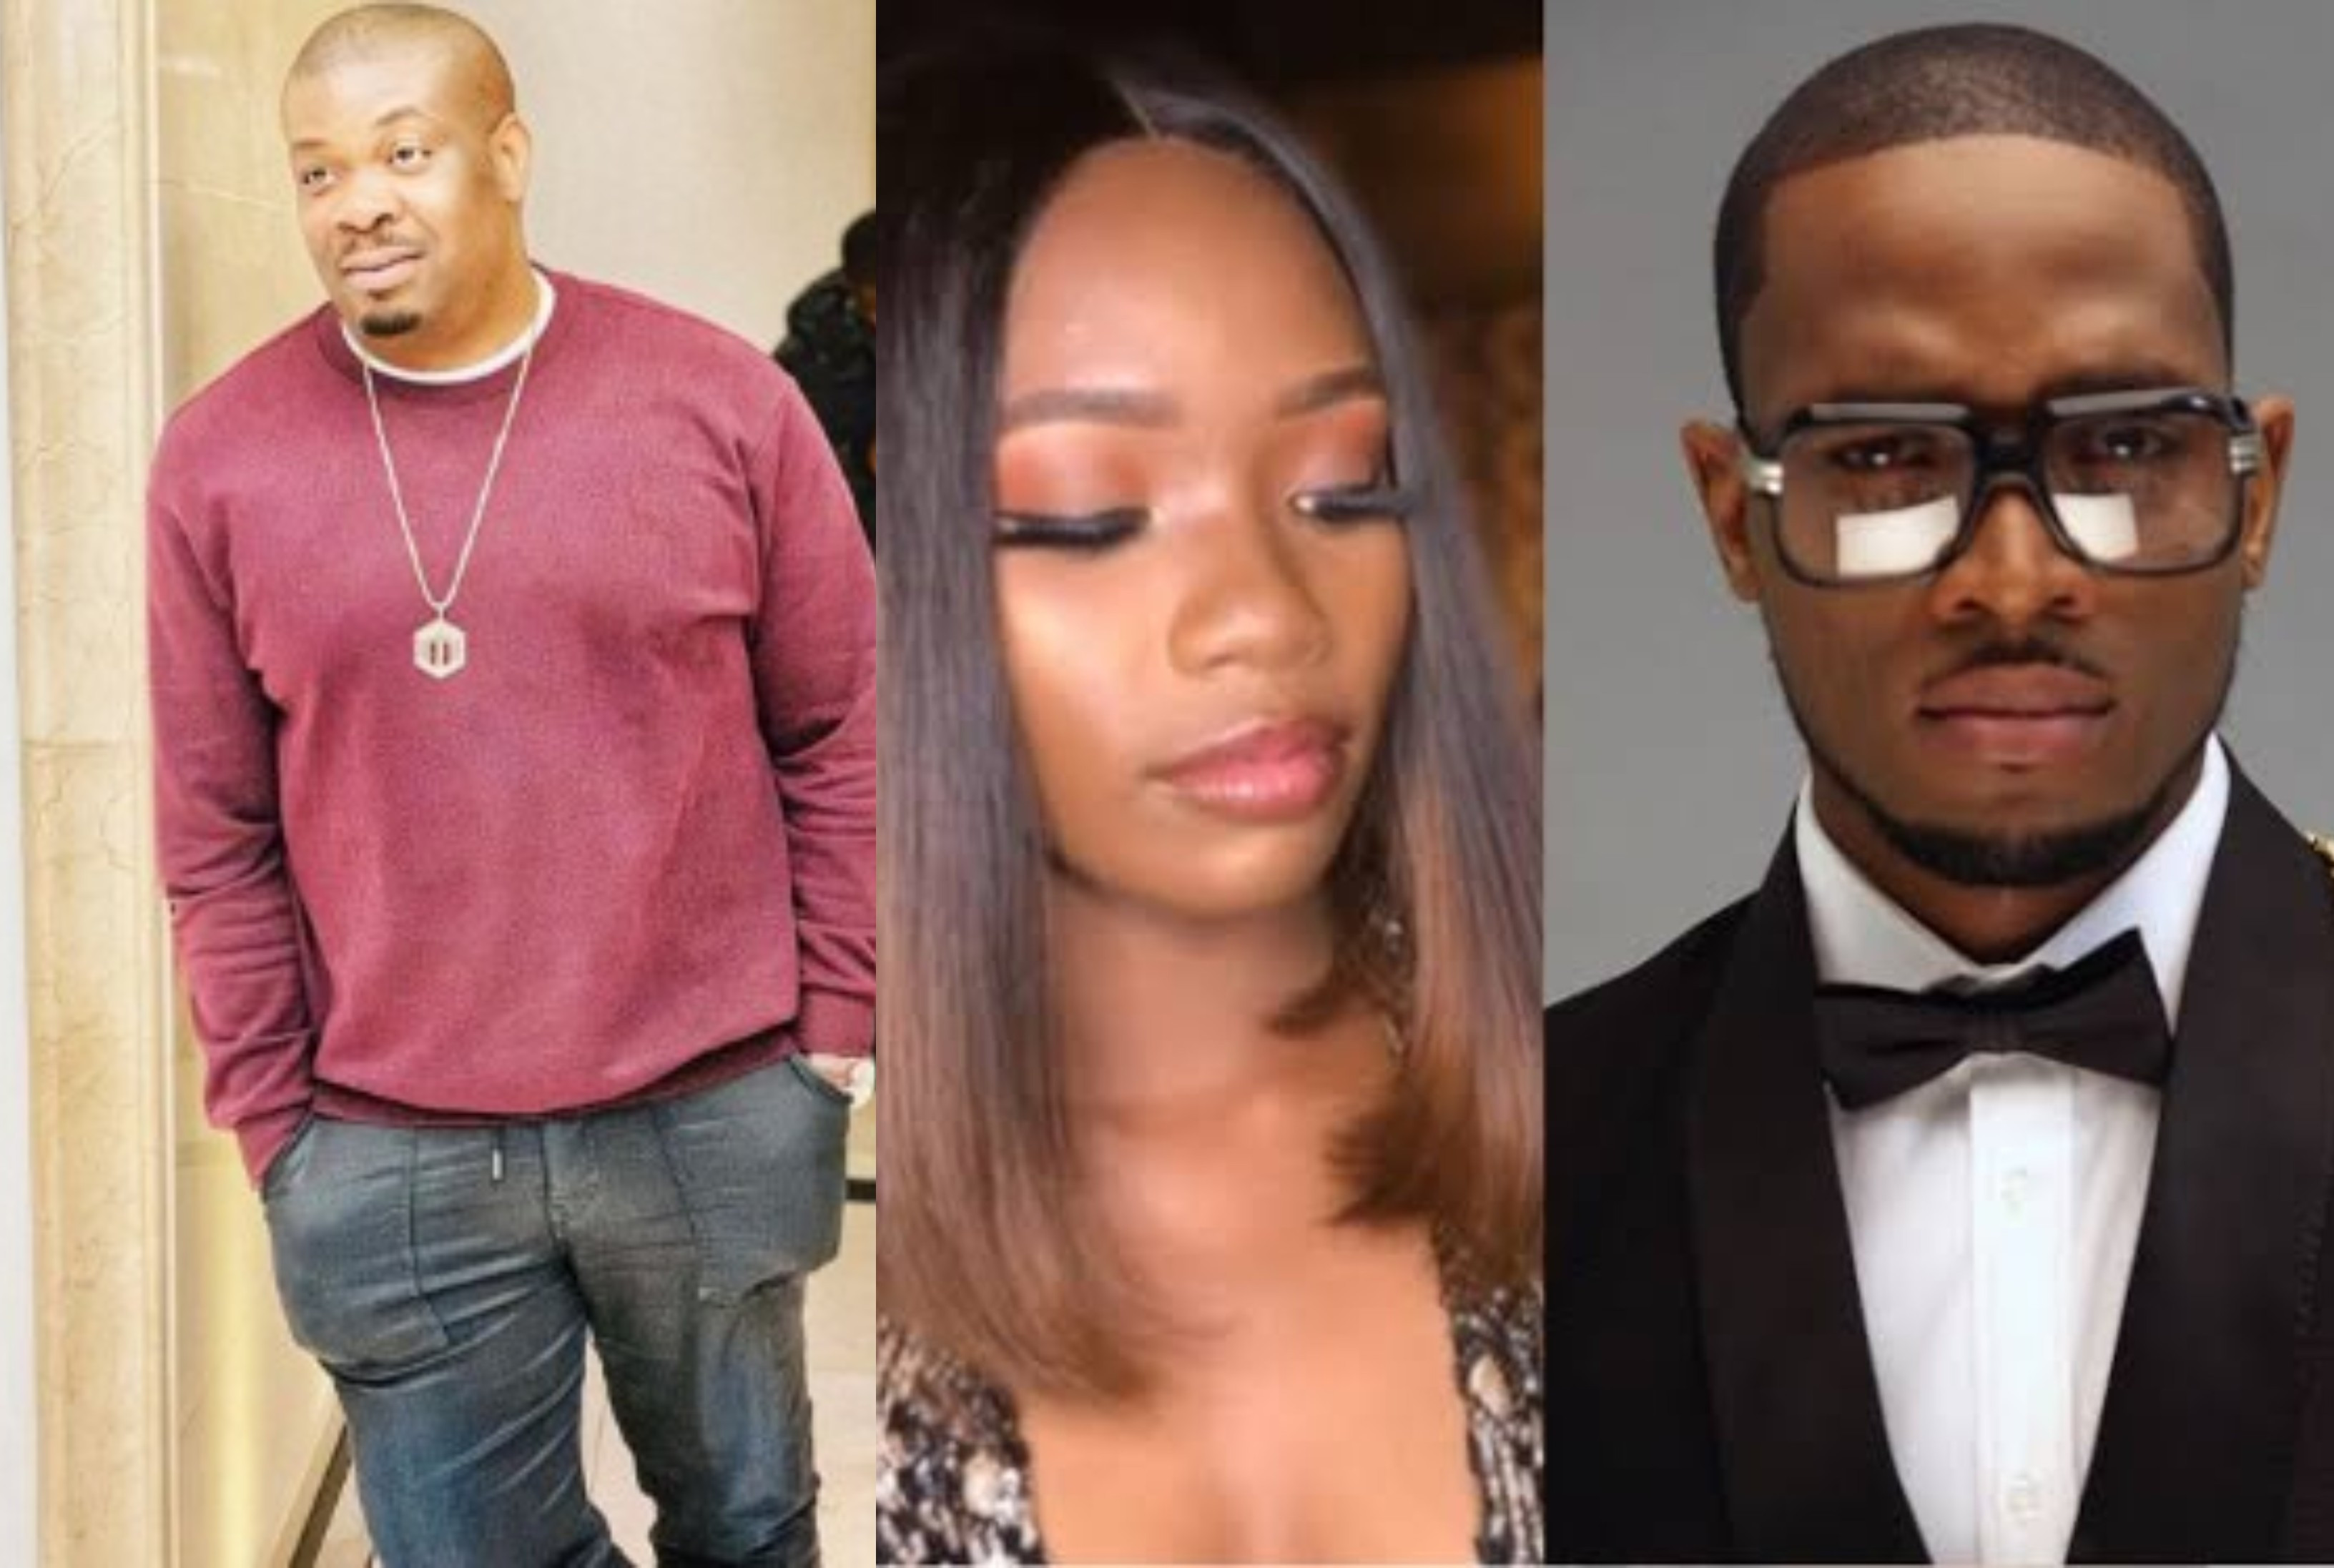 No matter how long a lie lasts, the truth will always prevail - Don Jazzy reacts to rape allegation against D